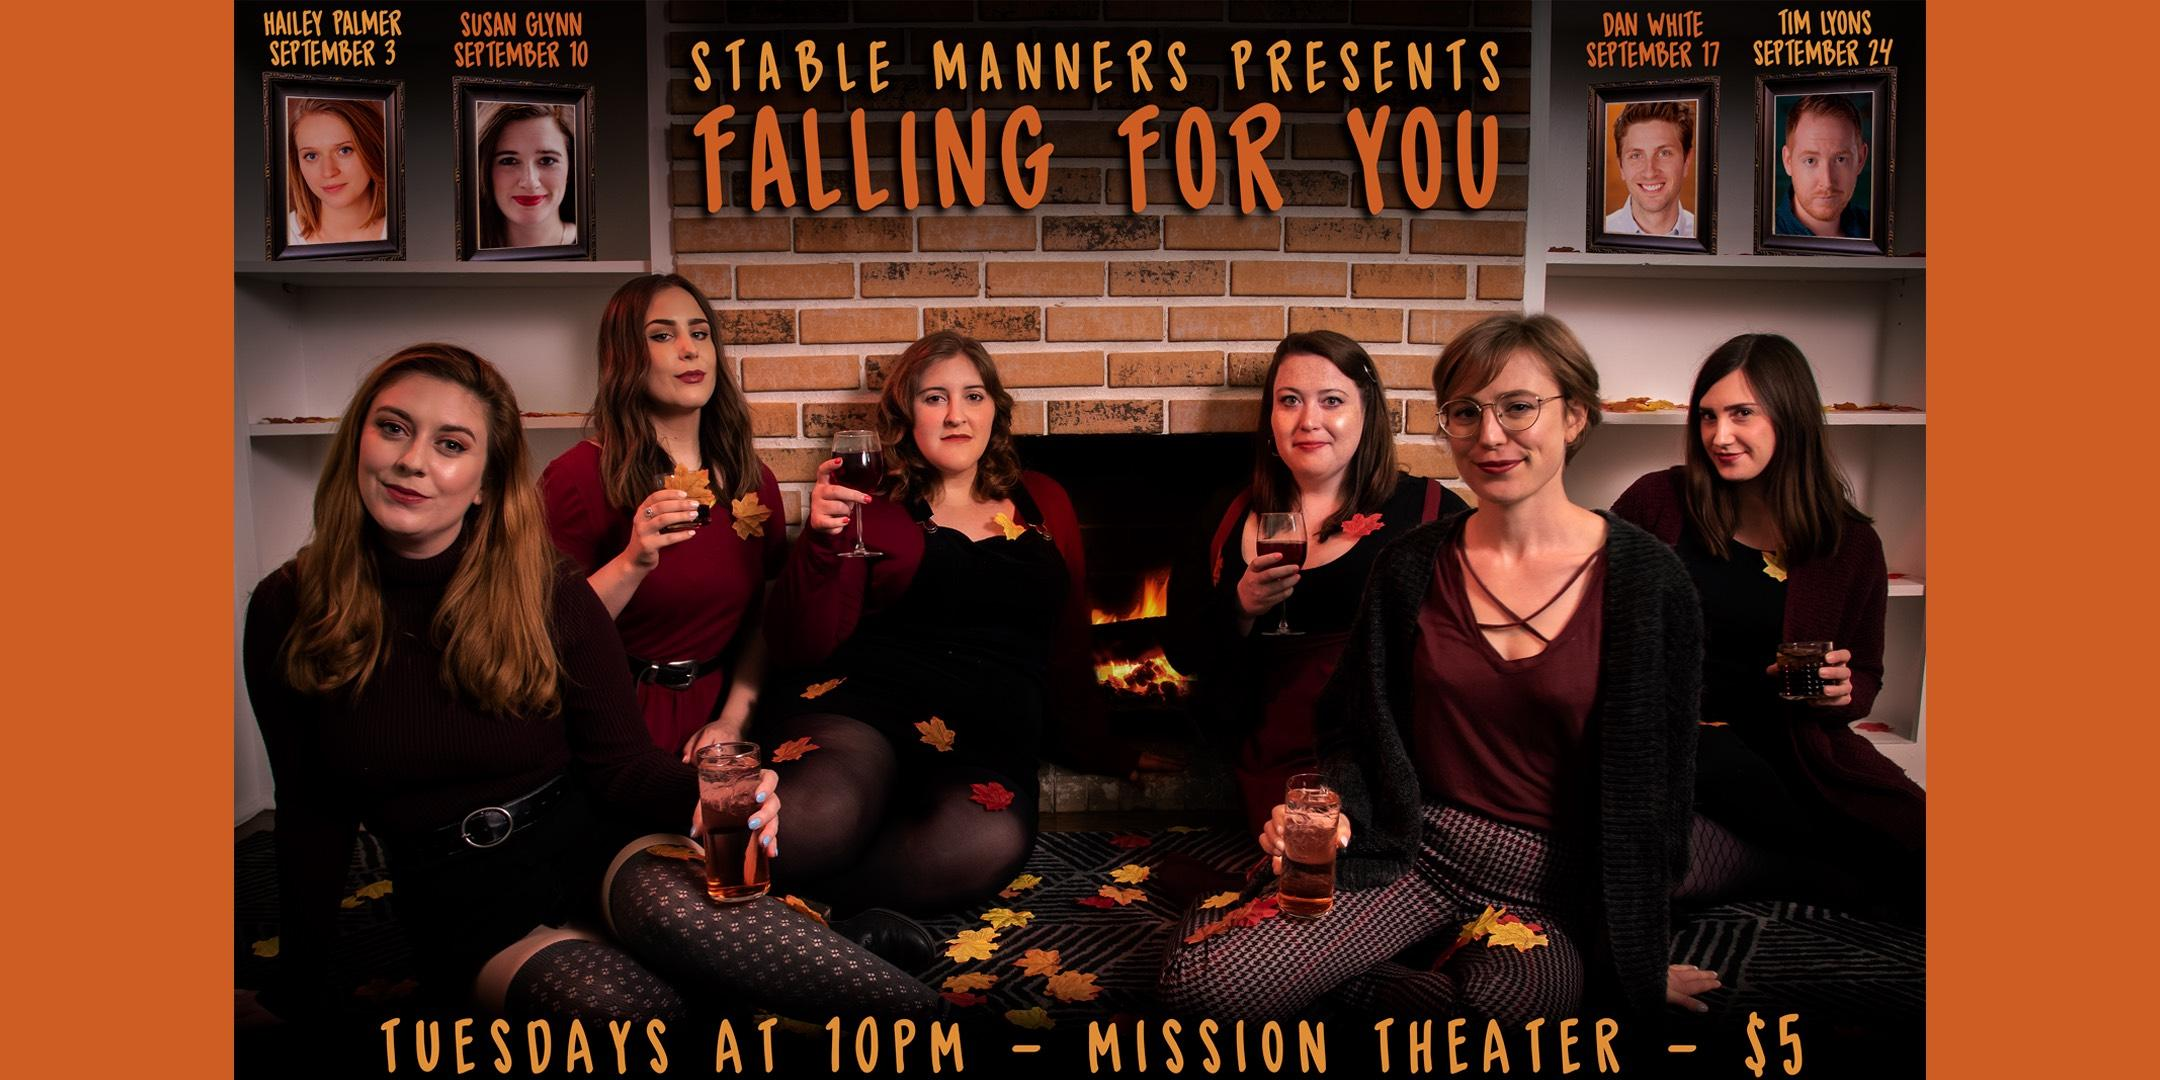 Stable Manners Presents: Cuffing Season, feat. Andy Junk